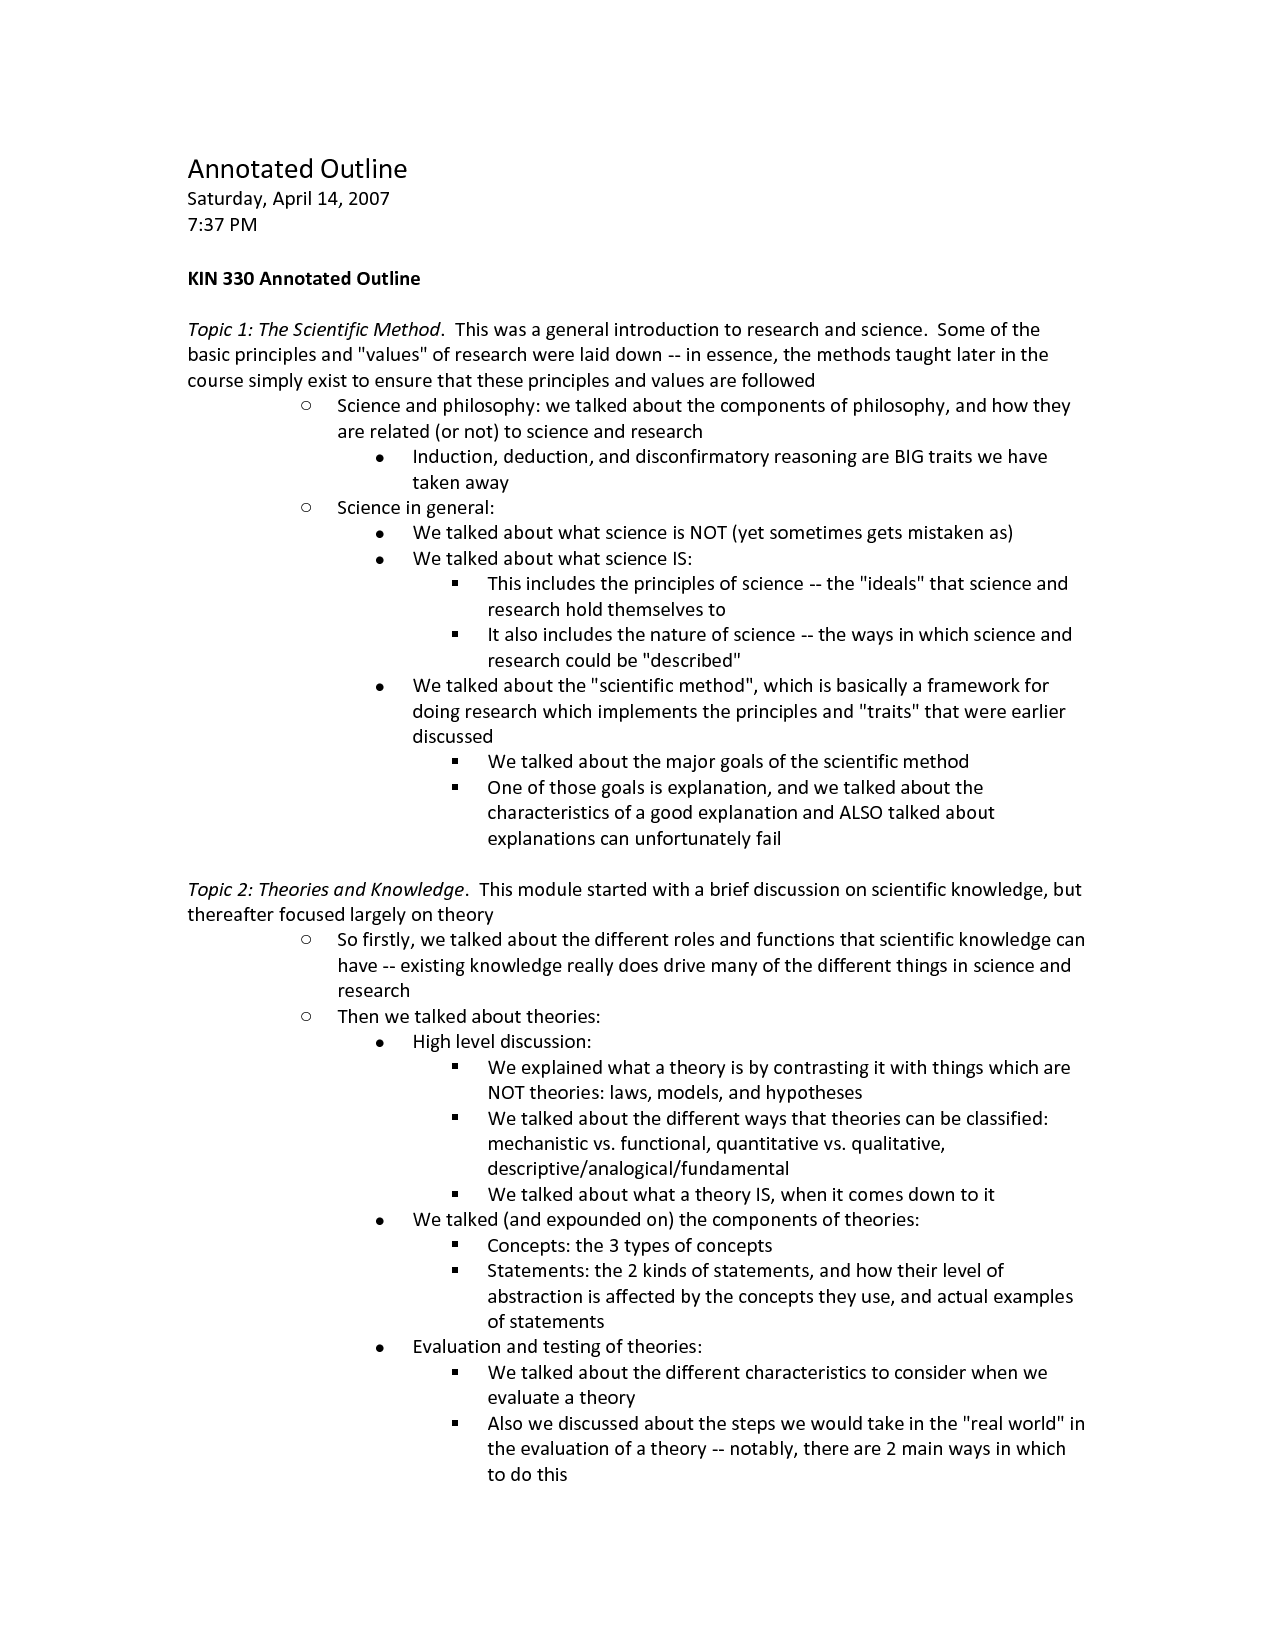 006 Apa Outline Format For Research Paper Sample Of Template L Dreaded Example Full